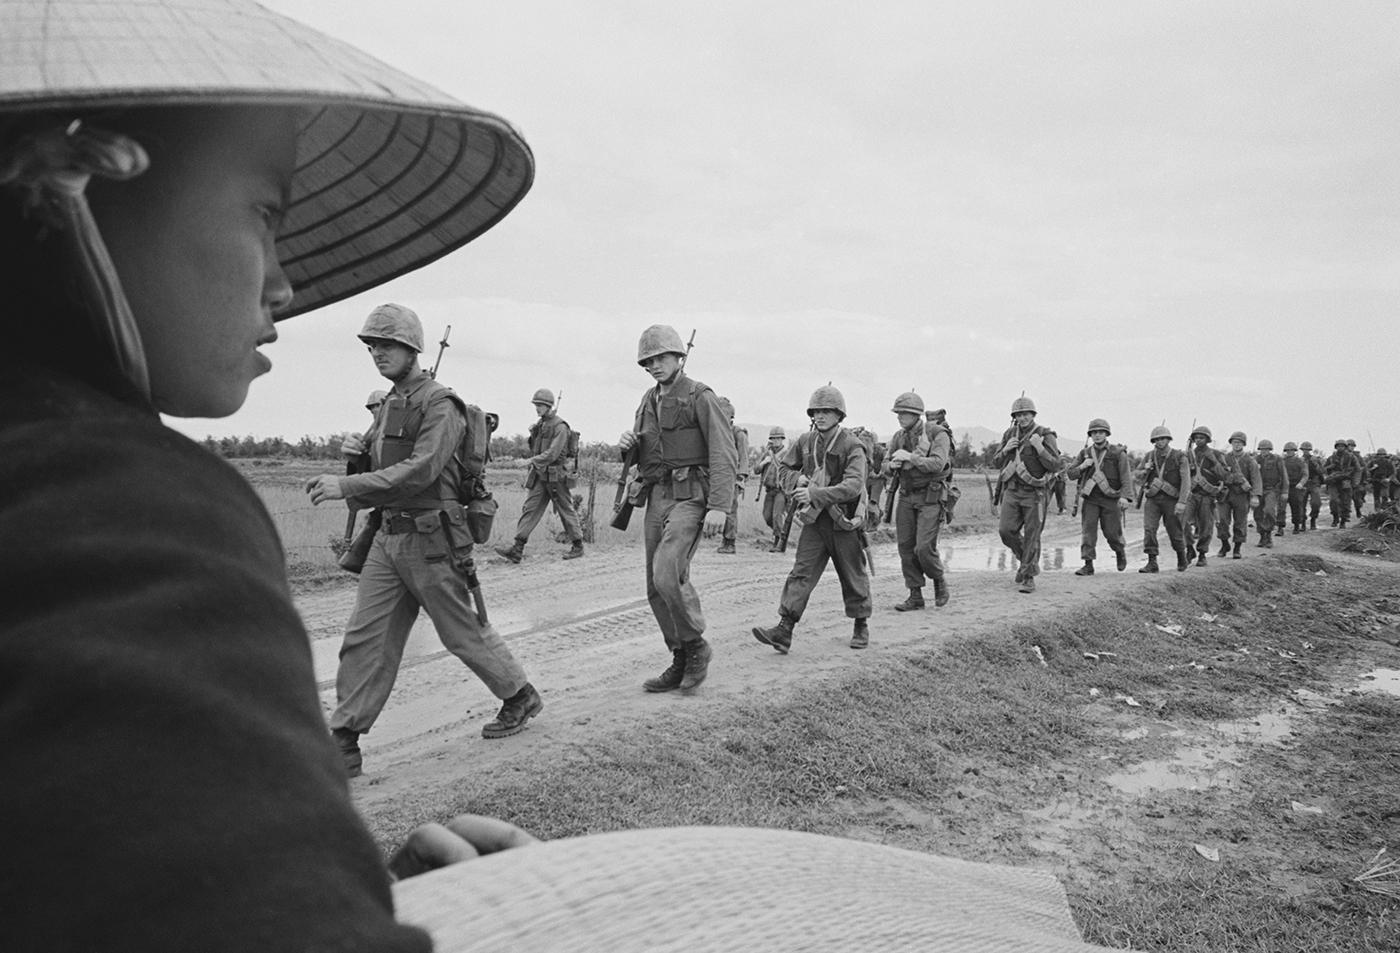 Marines marching in Danang. March 15, 1965. Photo: Associated Press